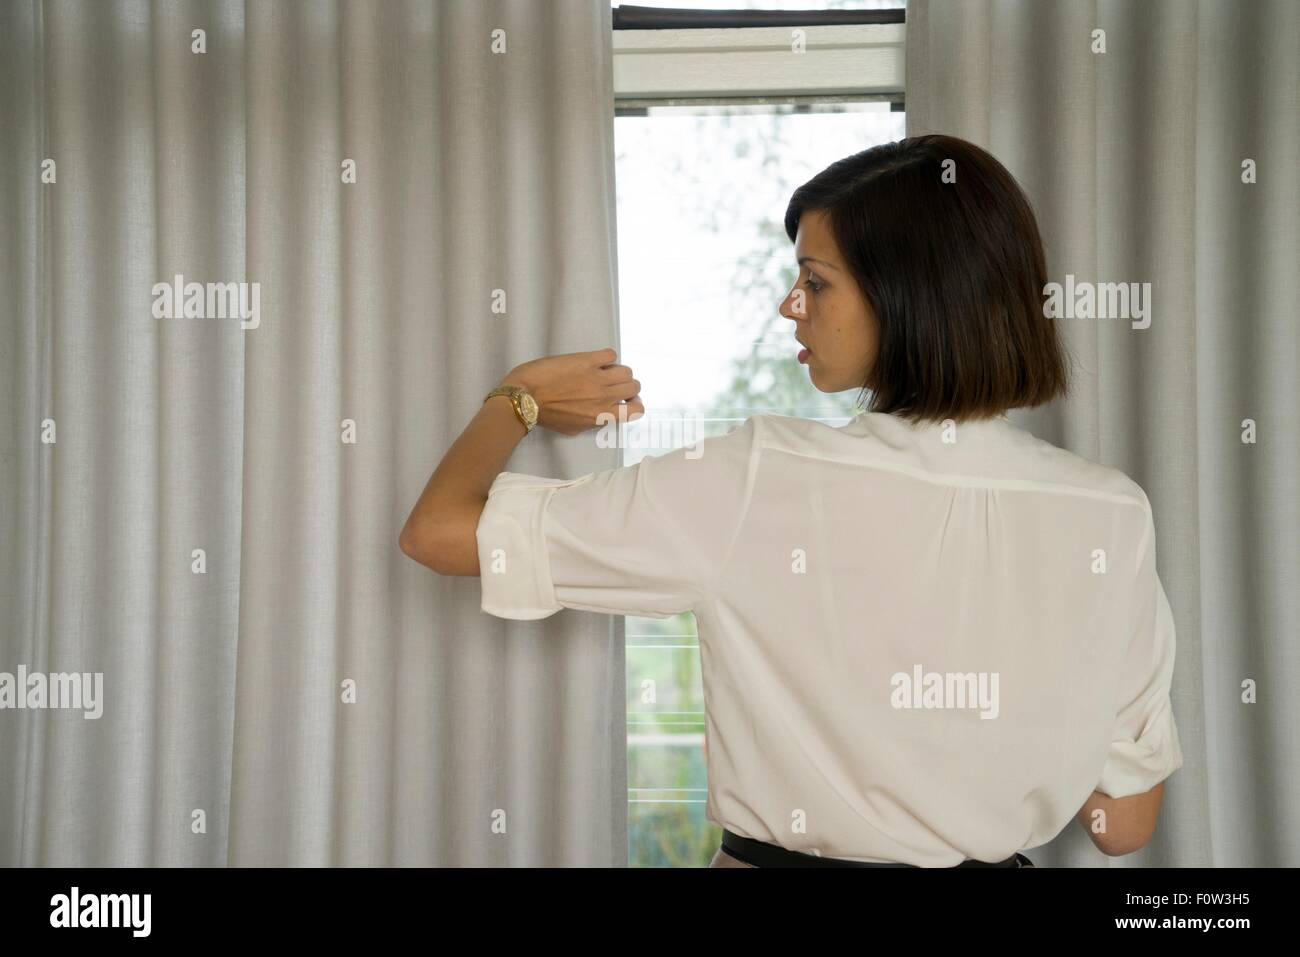 Businesswoman looking at wristwatch in front of window - Stock Image